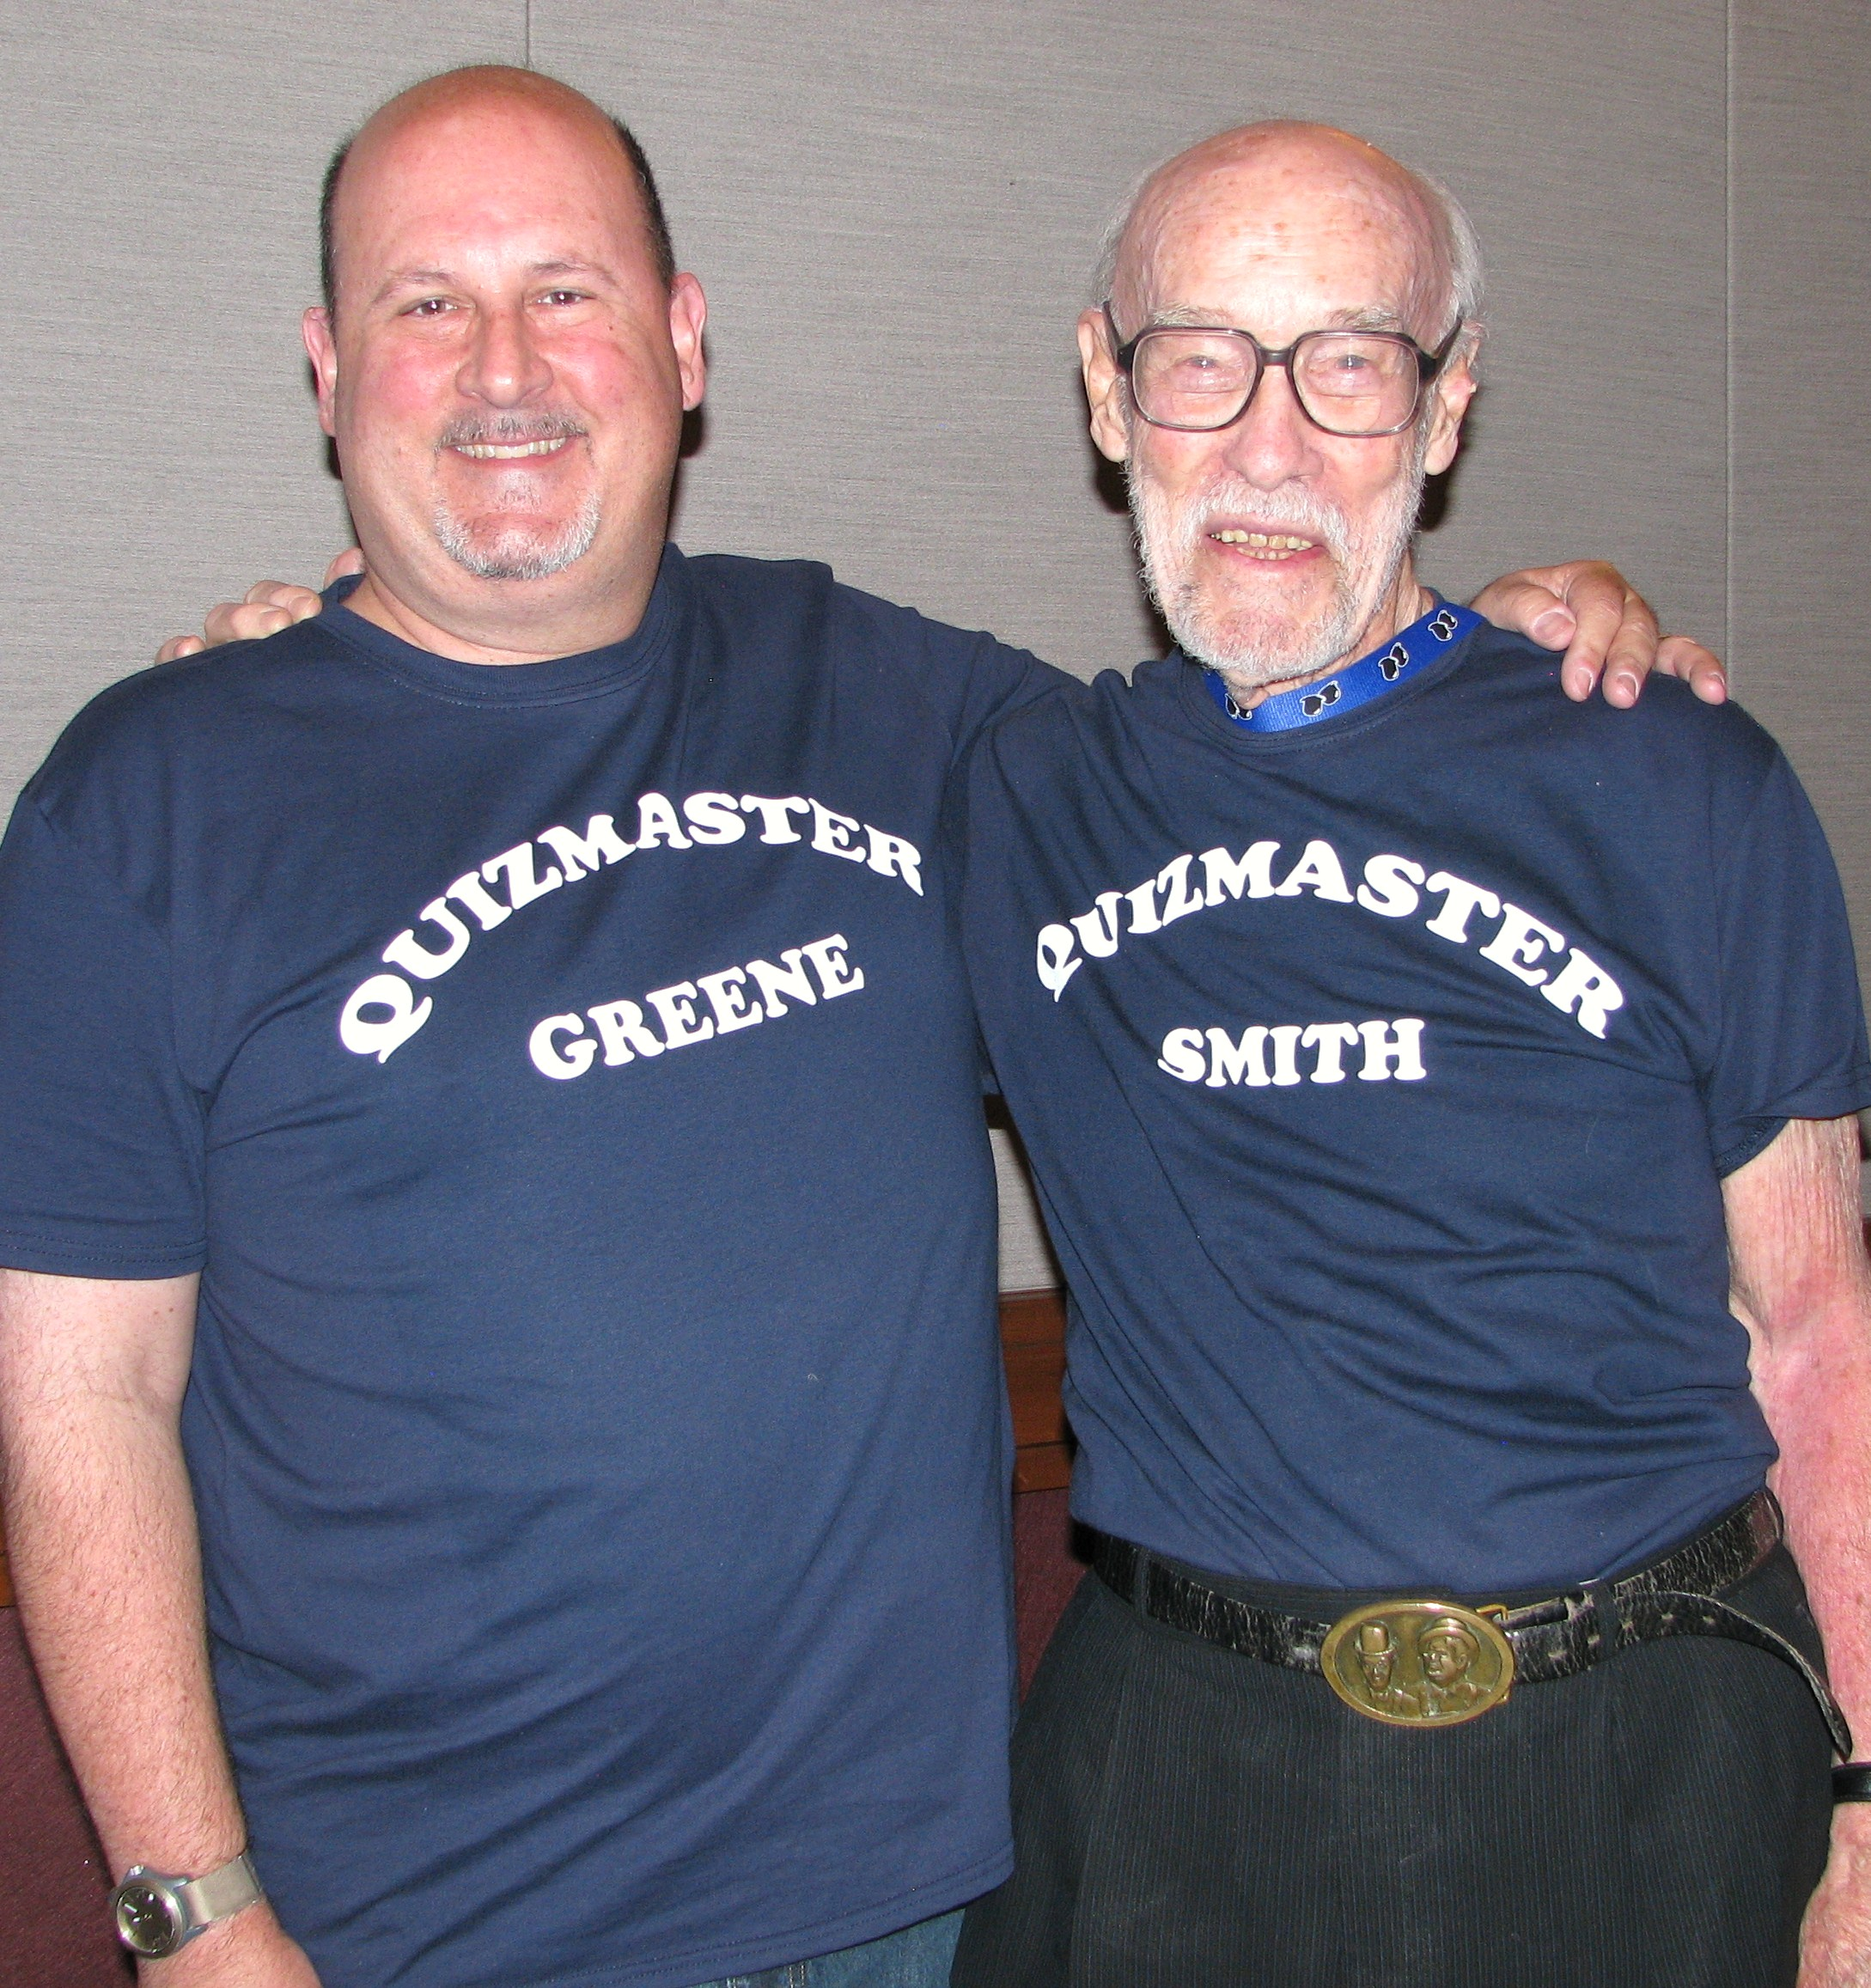 After many years apart Rick and Dwain reunited as they were the original quizmasters for the Sons Trivia Contest.